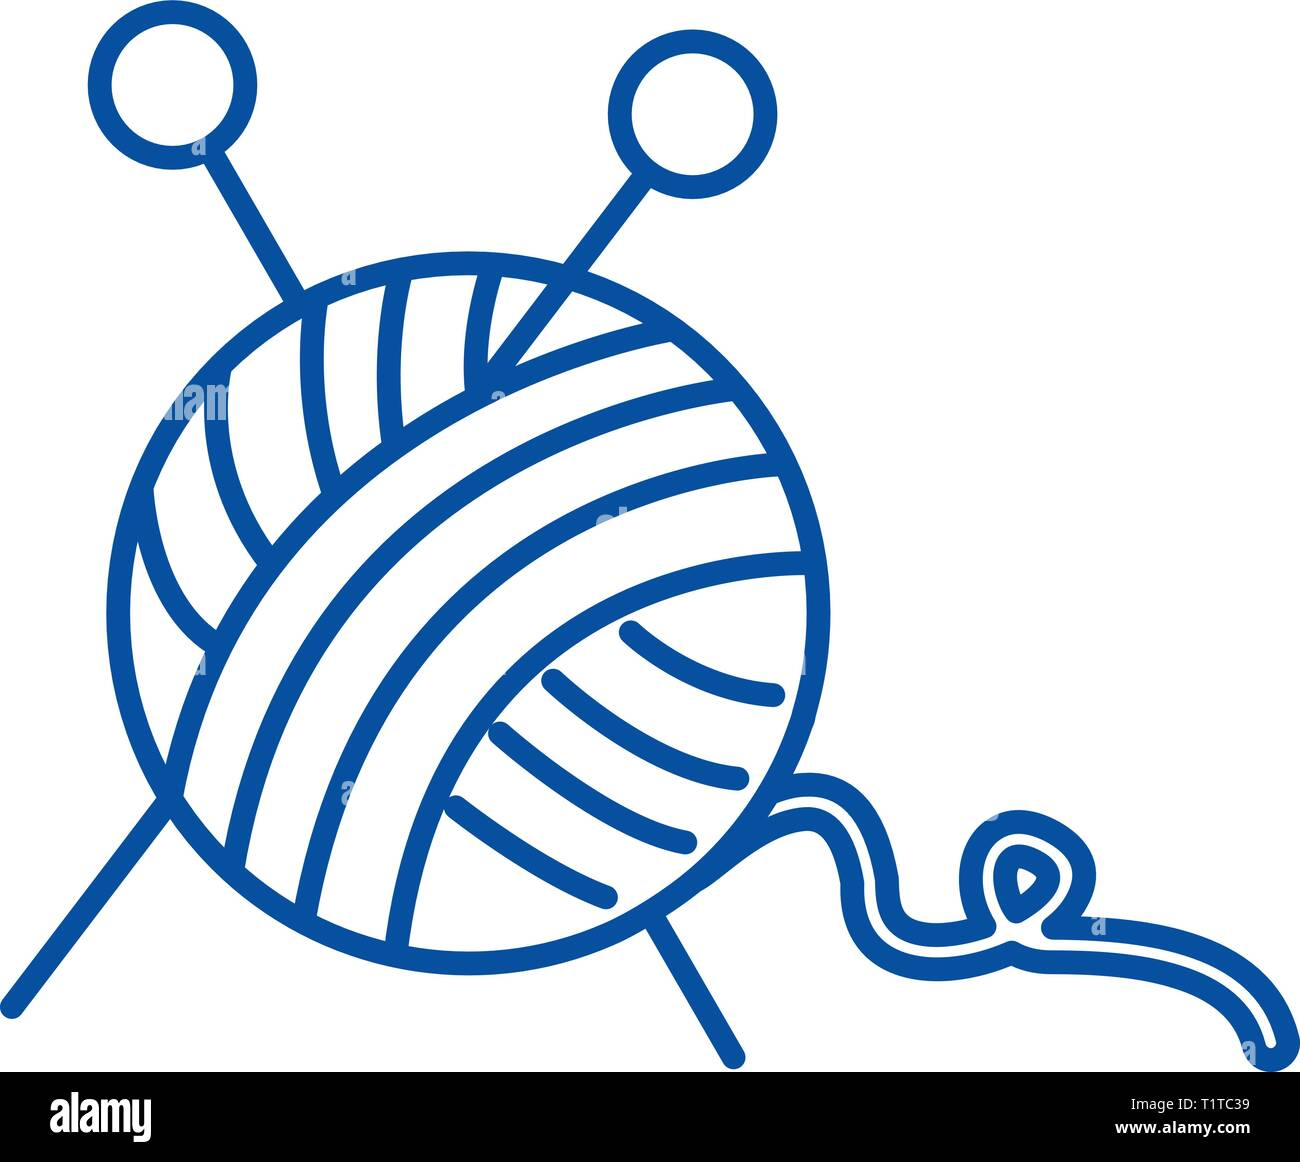 Sewing,ball of yarn,knitting needles line icon concept. Sewing,ball of yarn,knitting needles flat  vector symbol, sign, outline illustration. - Stock Vector